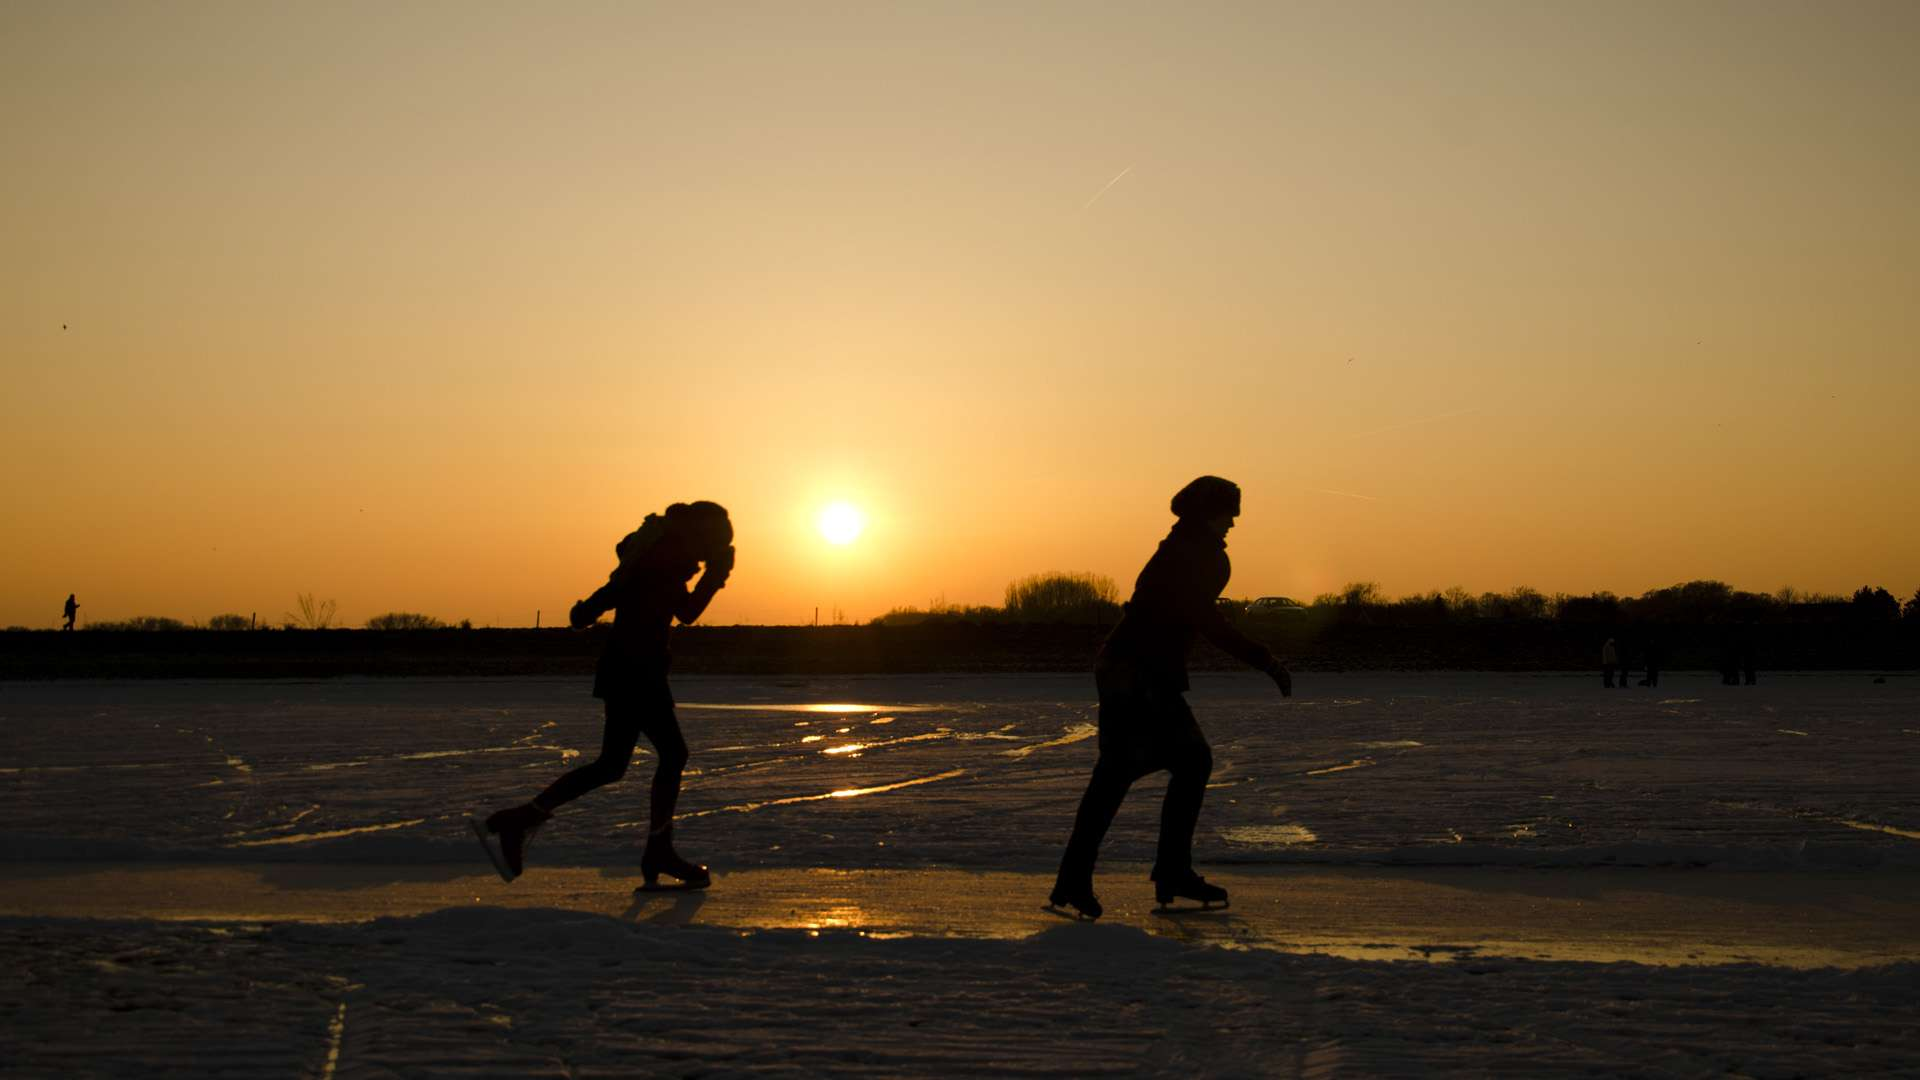 Sunset Ice Skating HD Wallpaper FullHDWpp   Full HD Wallpapers 1920x1080